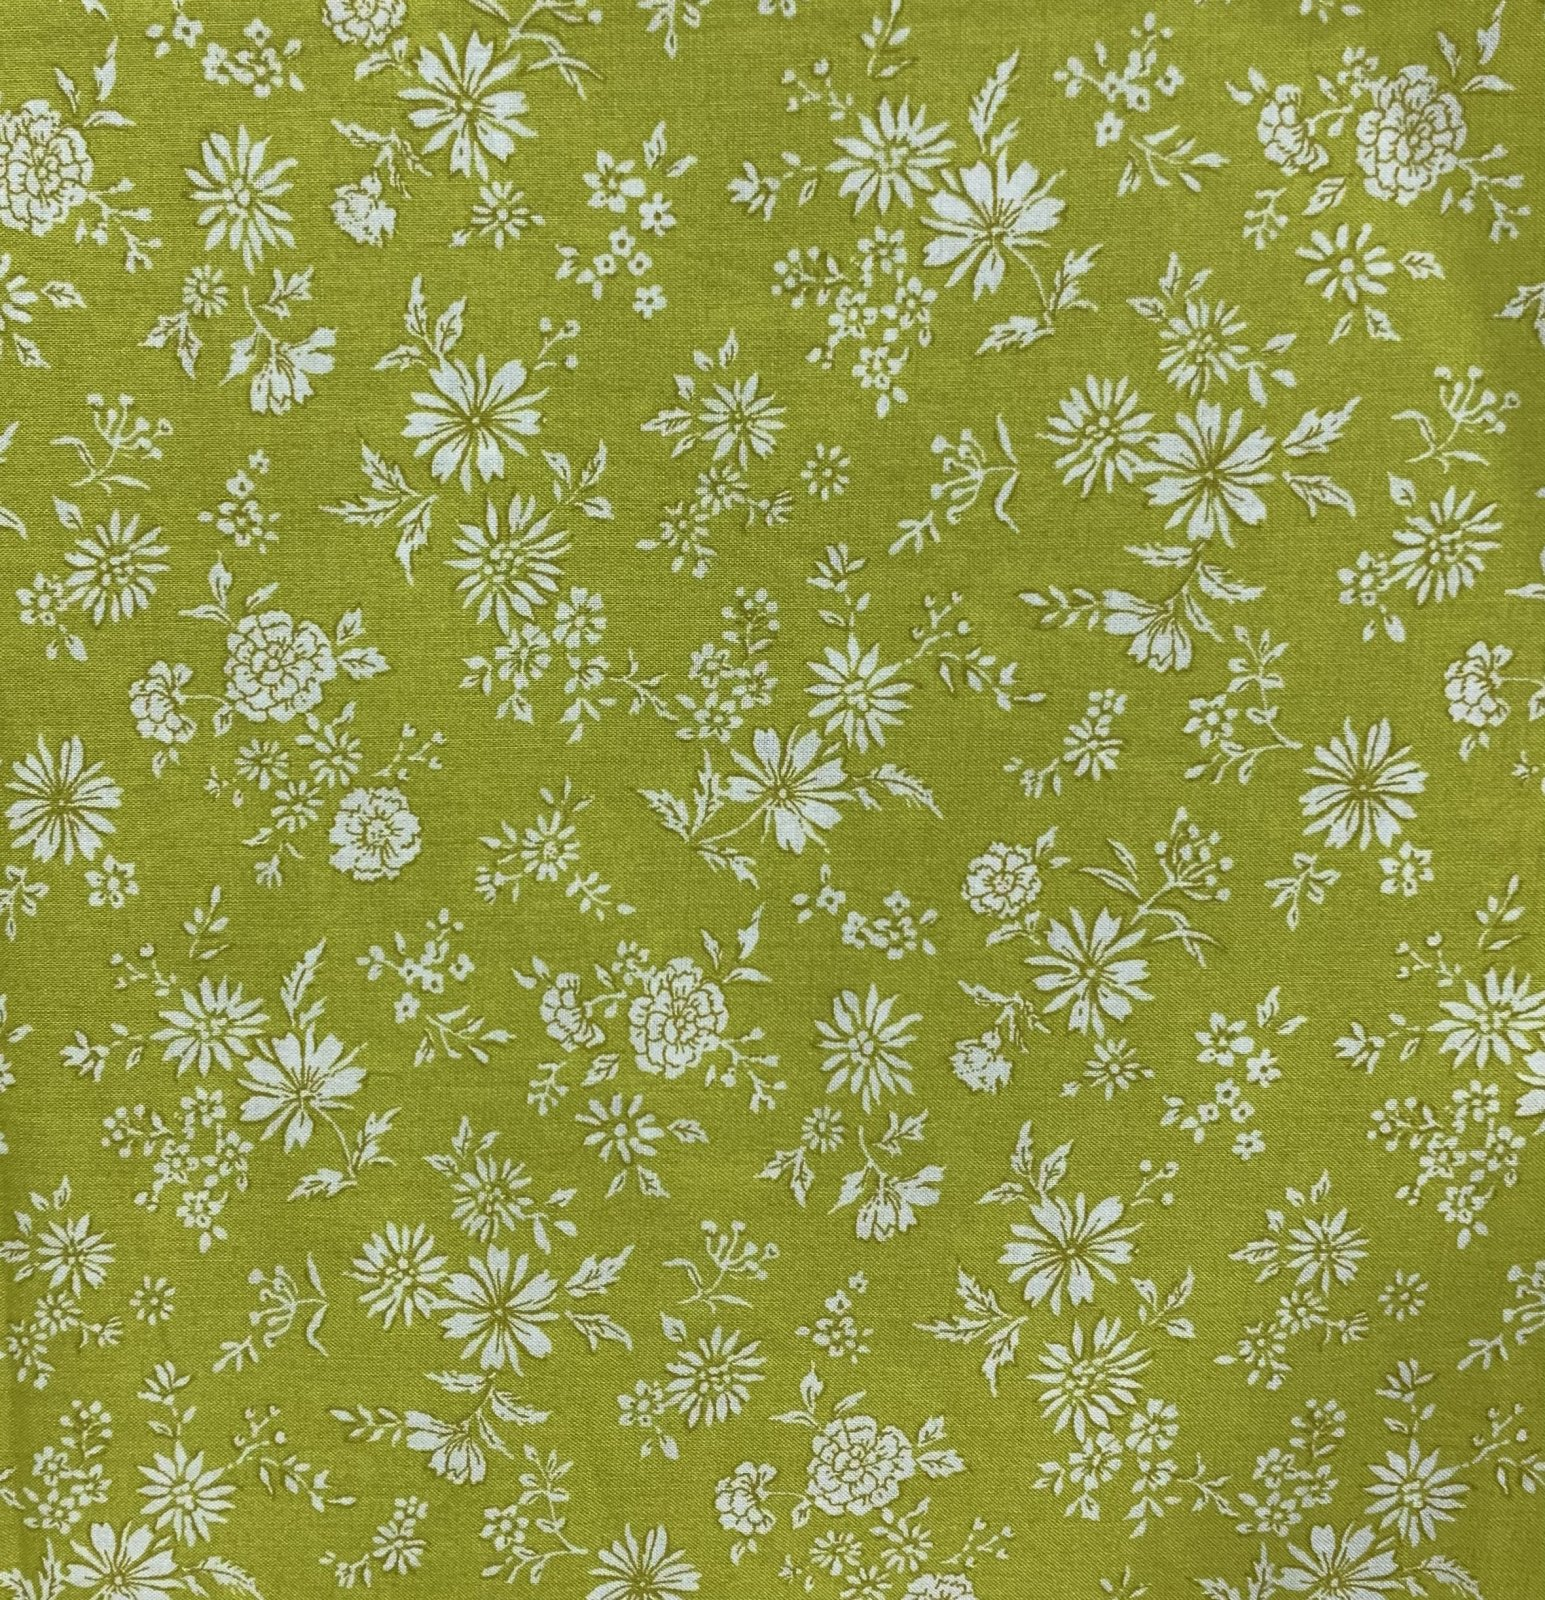 Japanese Fabric - Chartreuse Floral